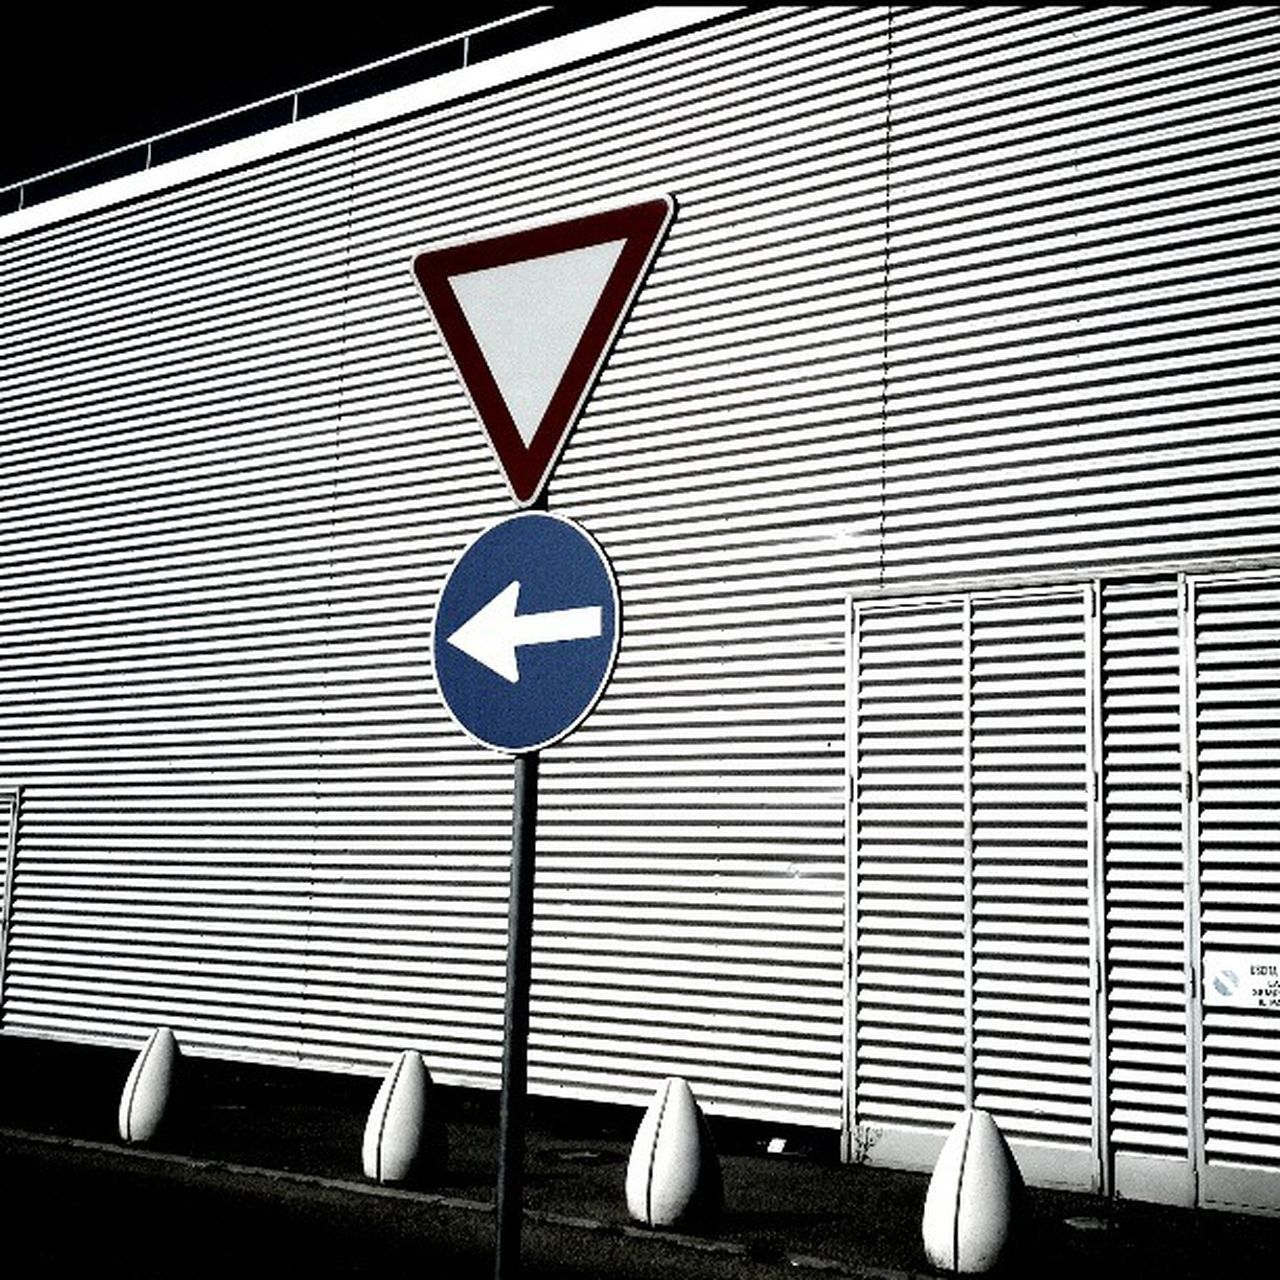 communication, road sign, day, no people, outdoors